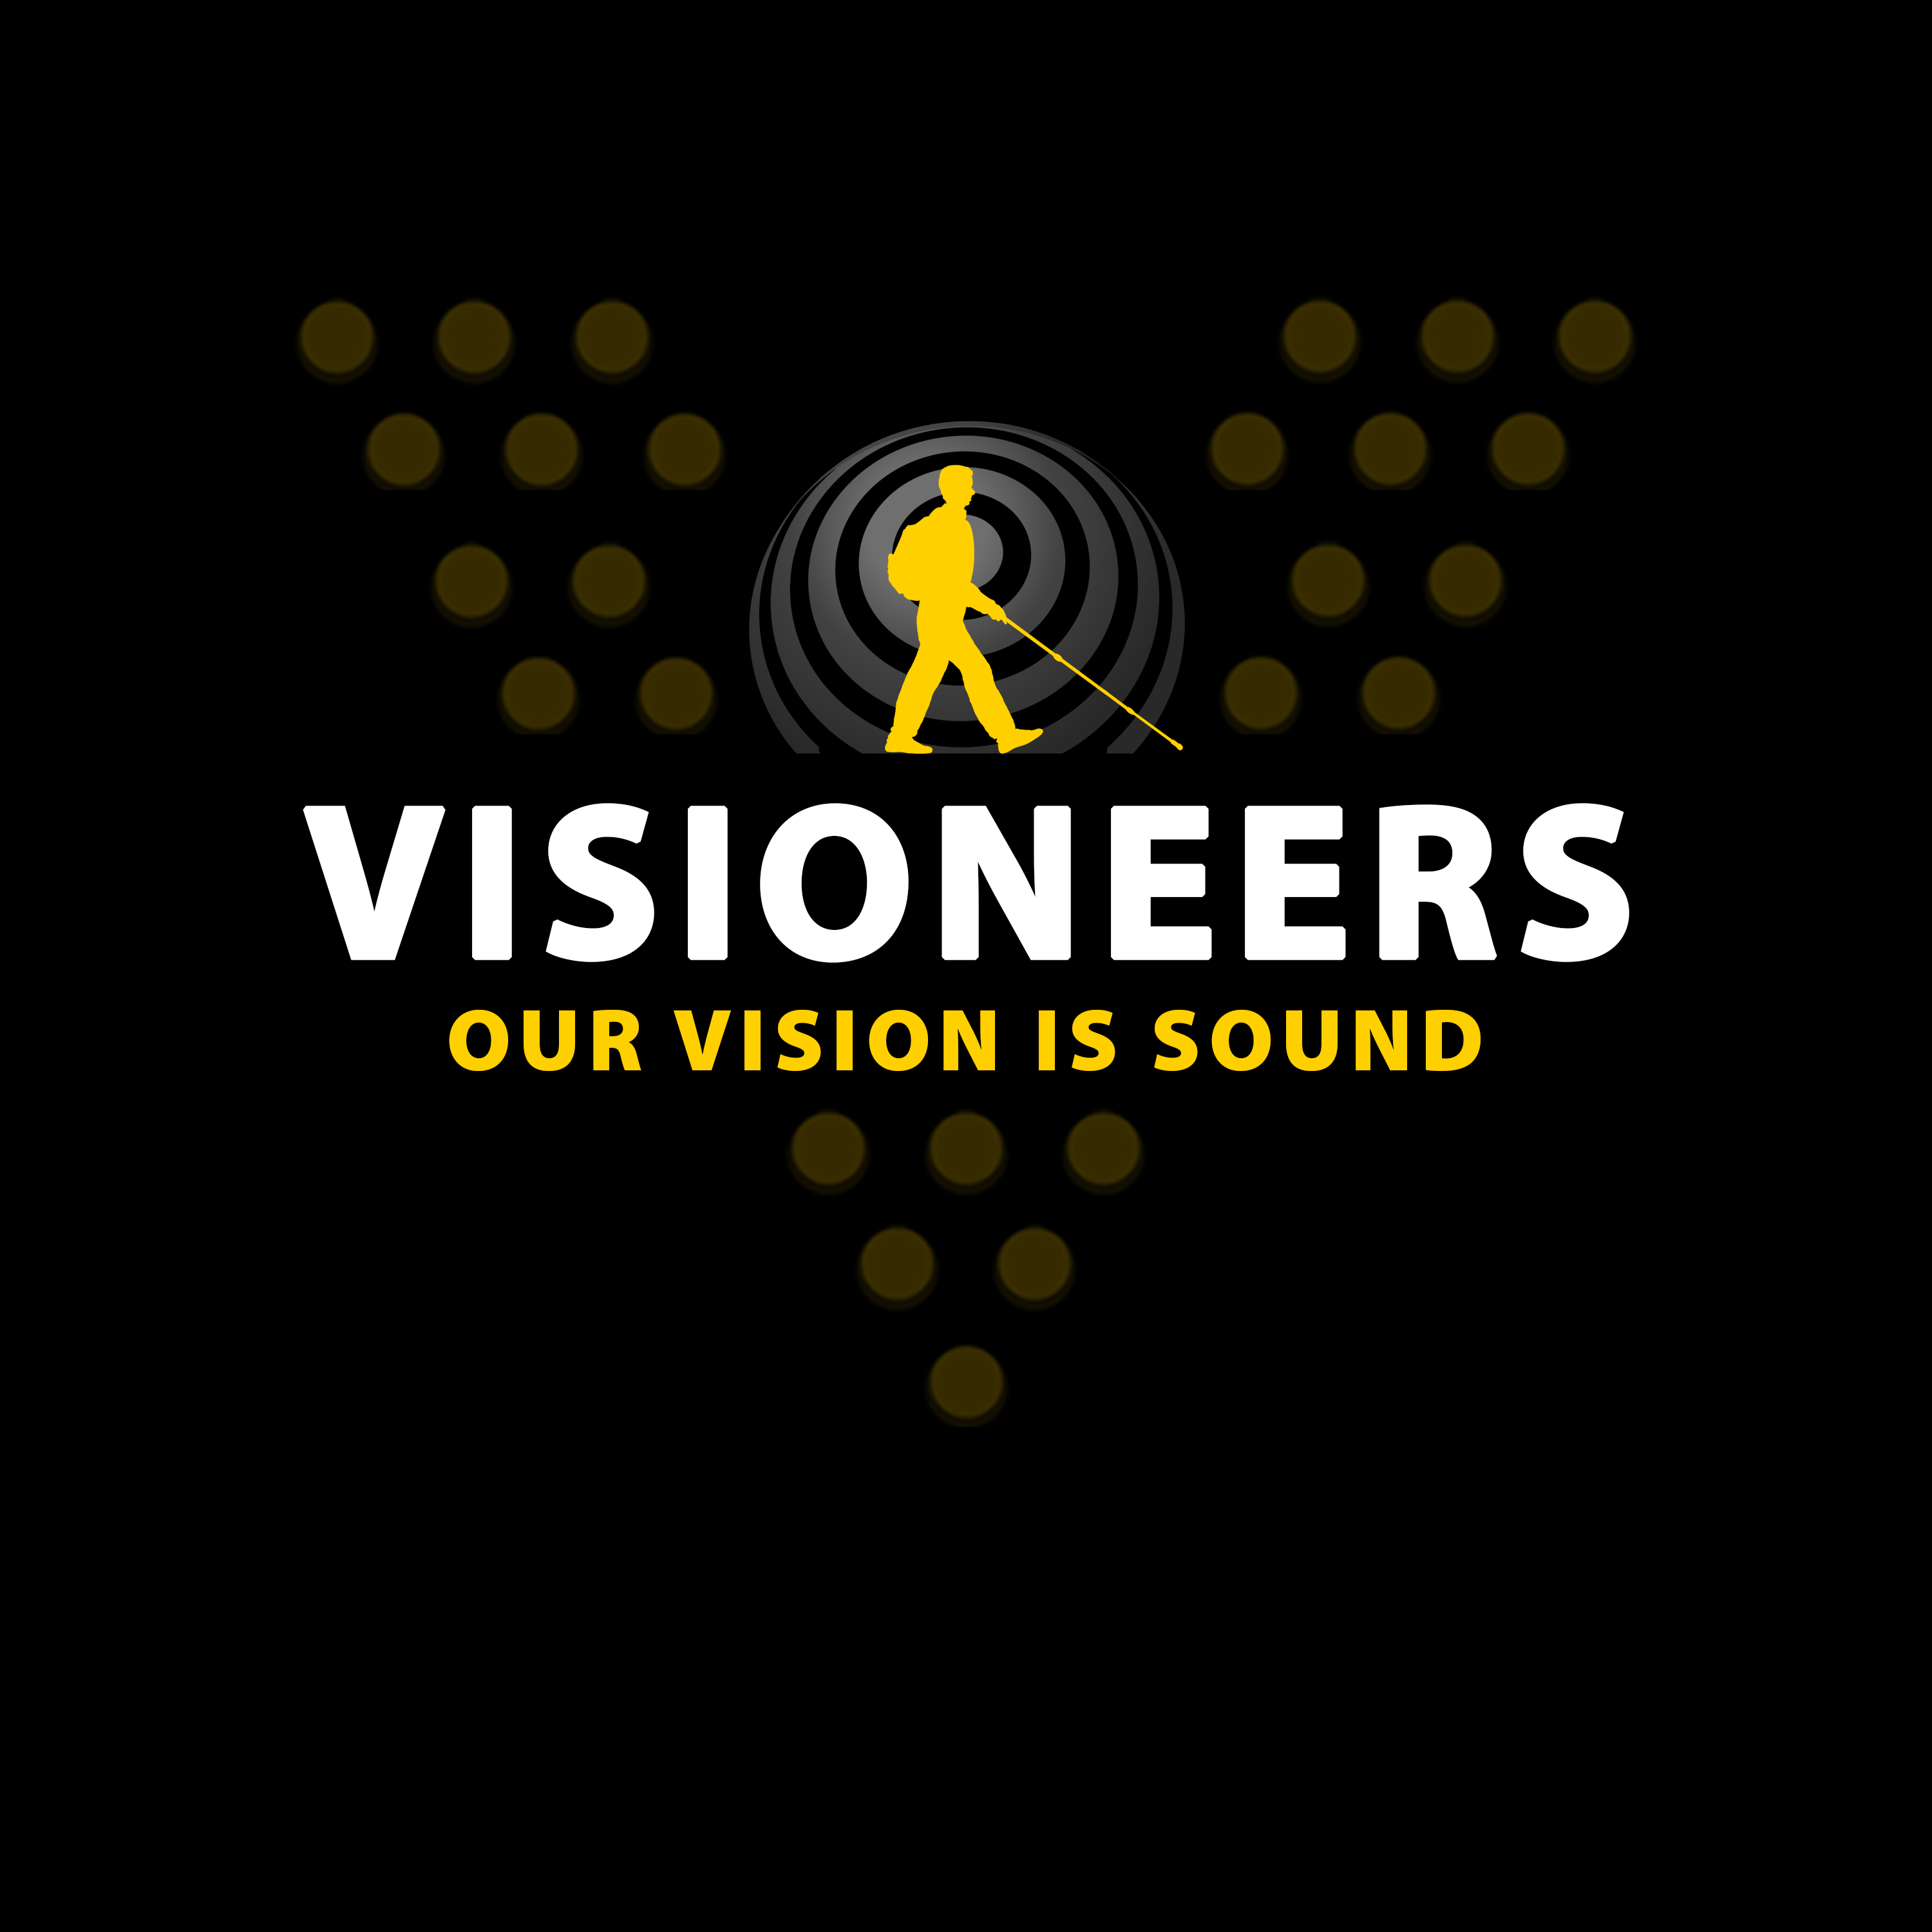 Visioneers 7b. Same as previous panel but with yellow Daniel silhouette.